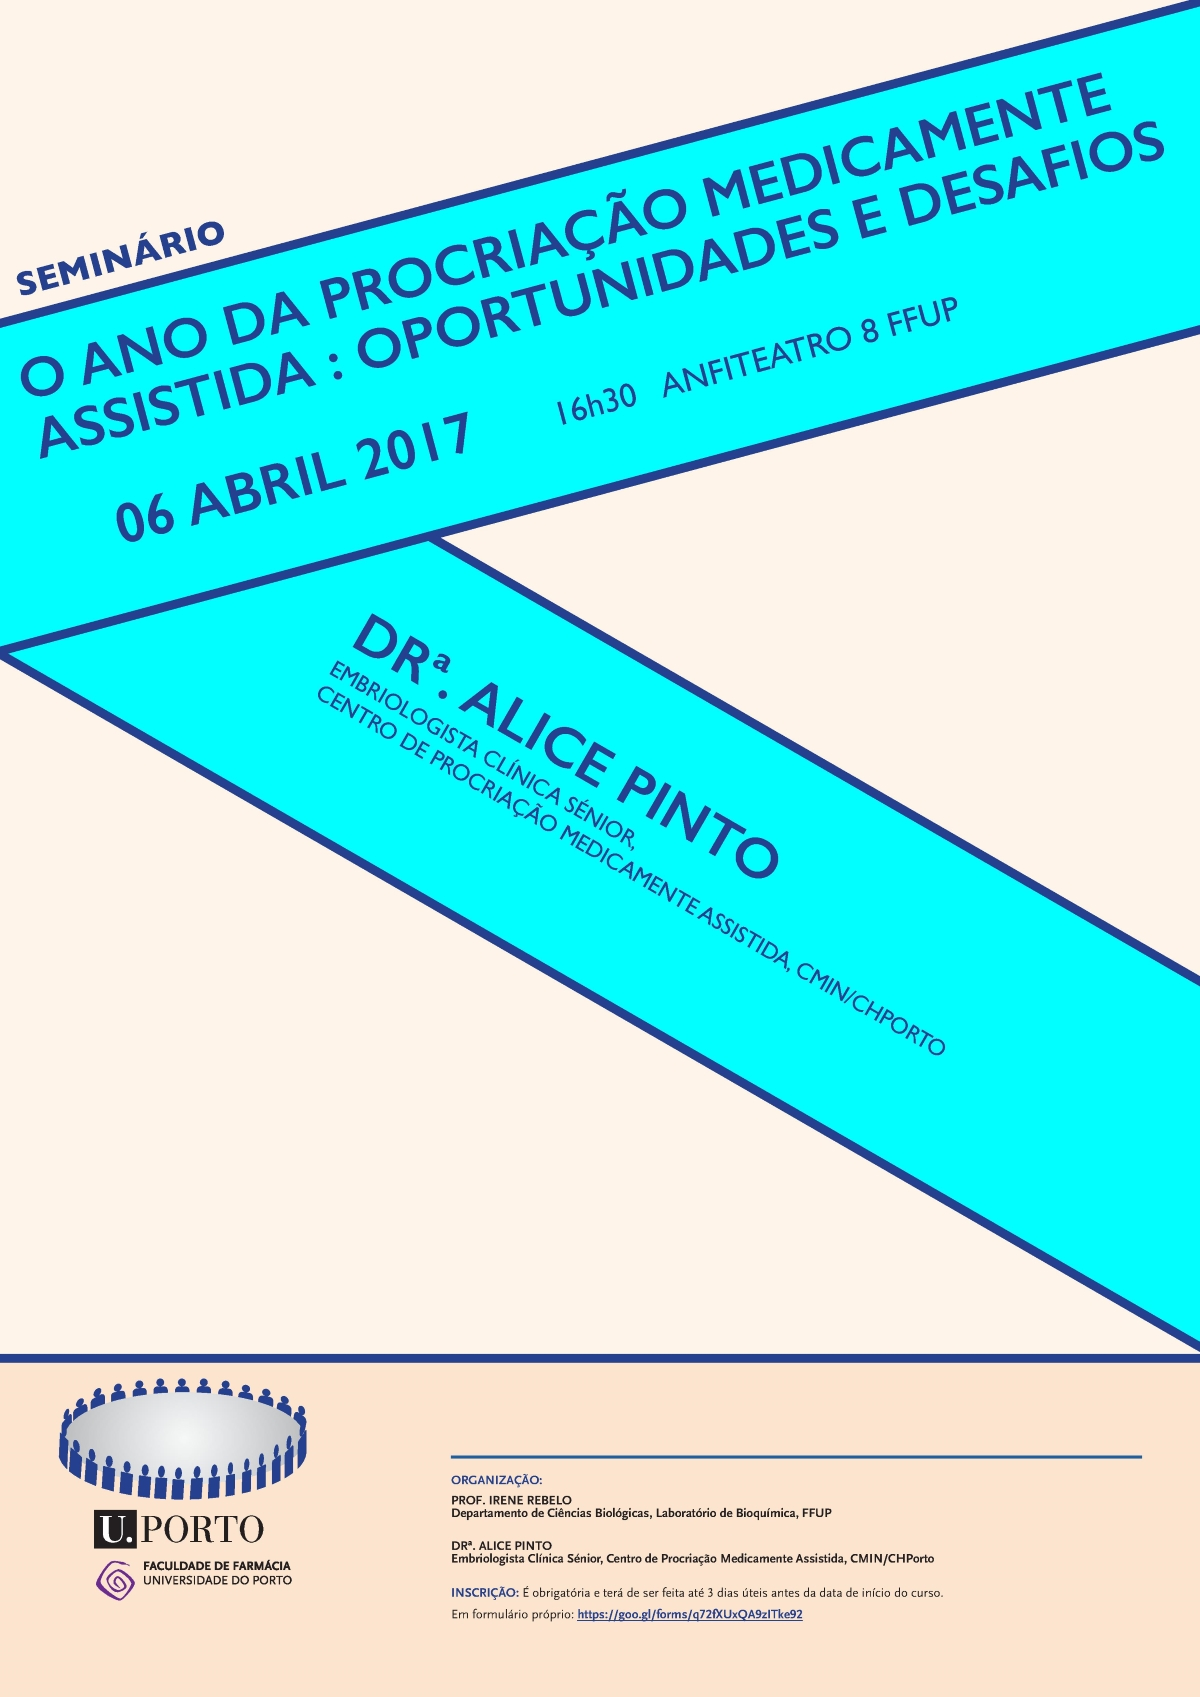 Cartaz do seminário do dia 6 de abril de 2017